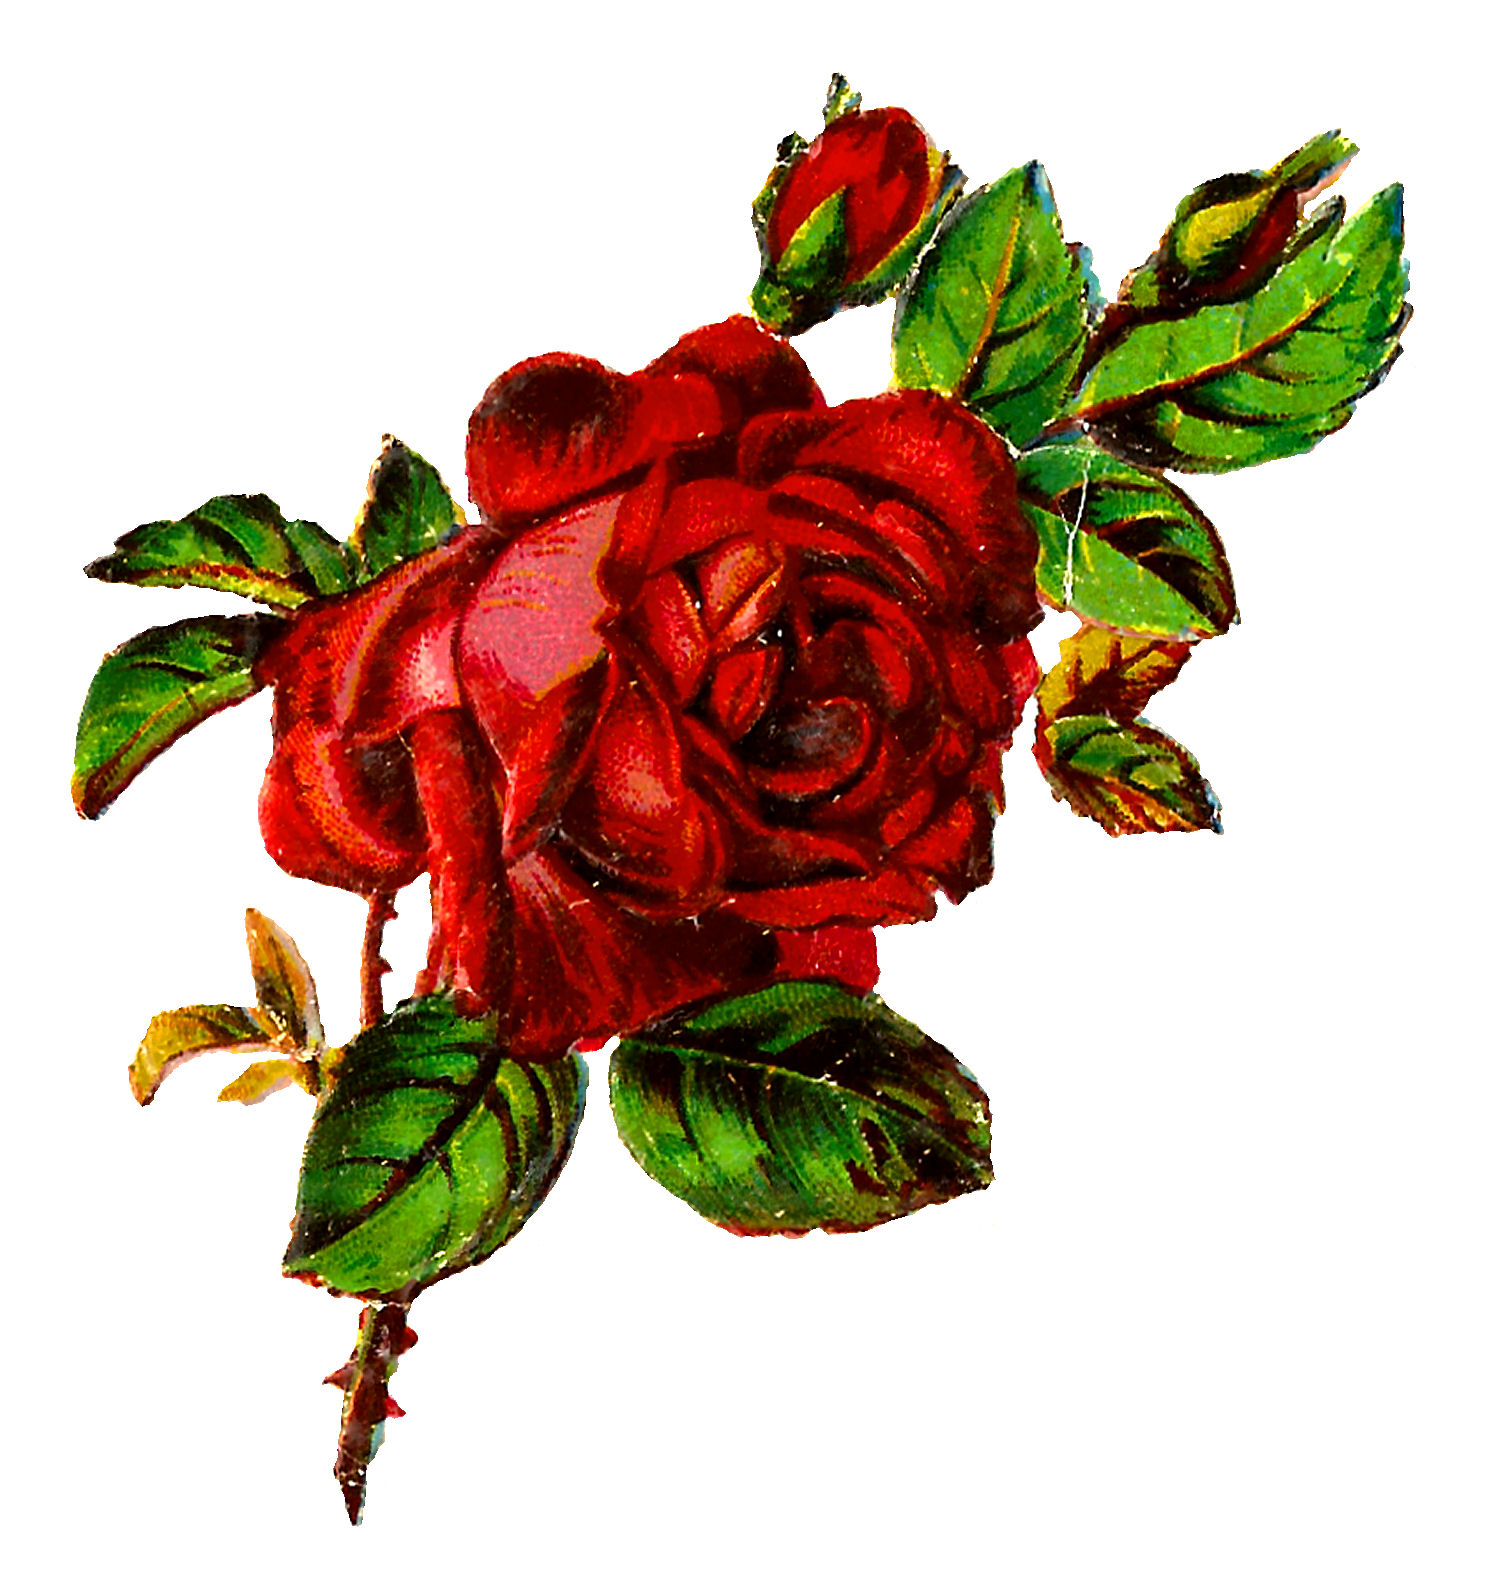 Antique Images: Free Shabby Chic Red Rose Image Grunge ...